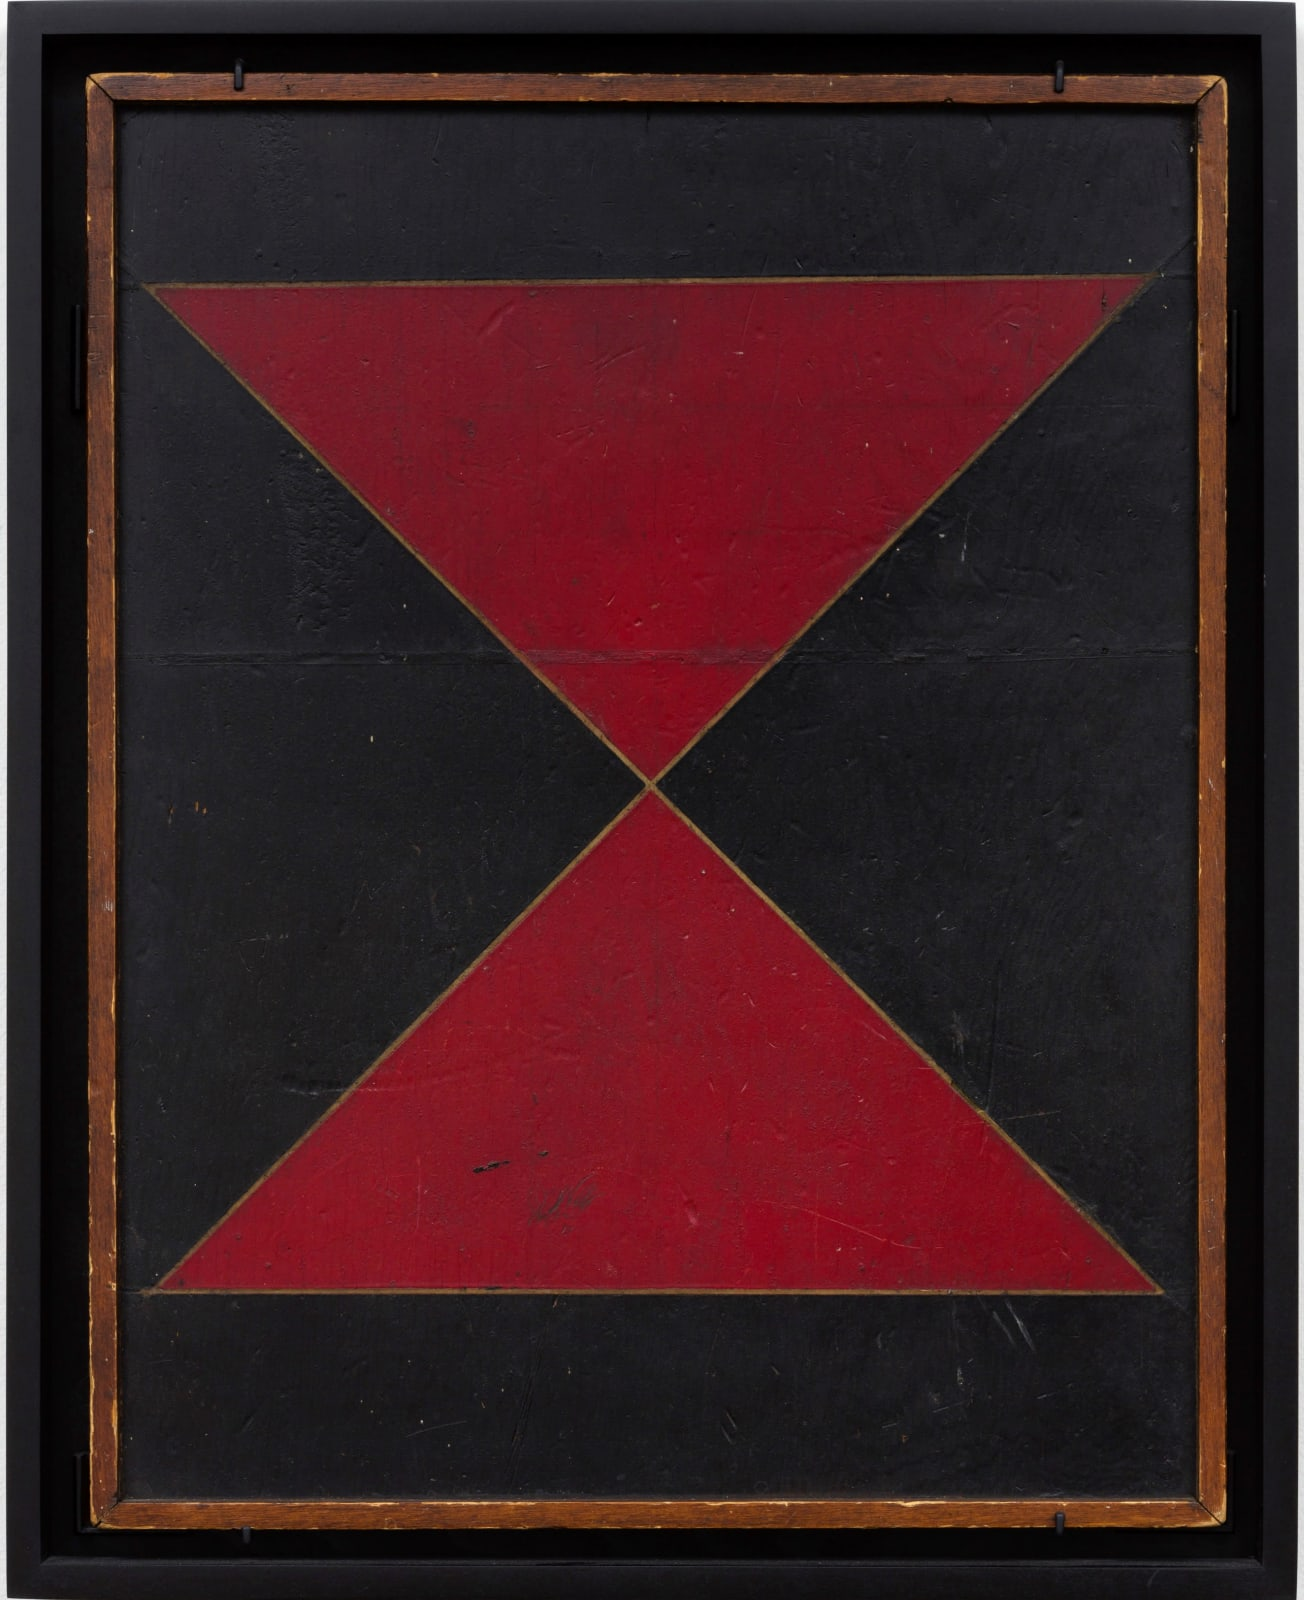 GAME BOARD, LATE 19TH CENTURY Oil enamel on wood panel 22 3/8 x 18 in. 56.8 x 45.7 cm. (AU 284)